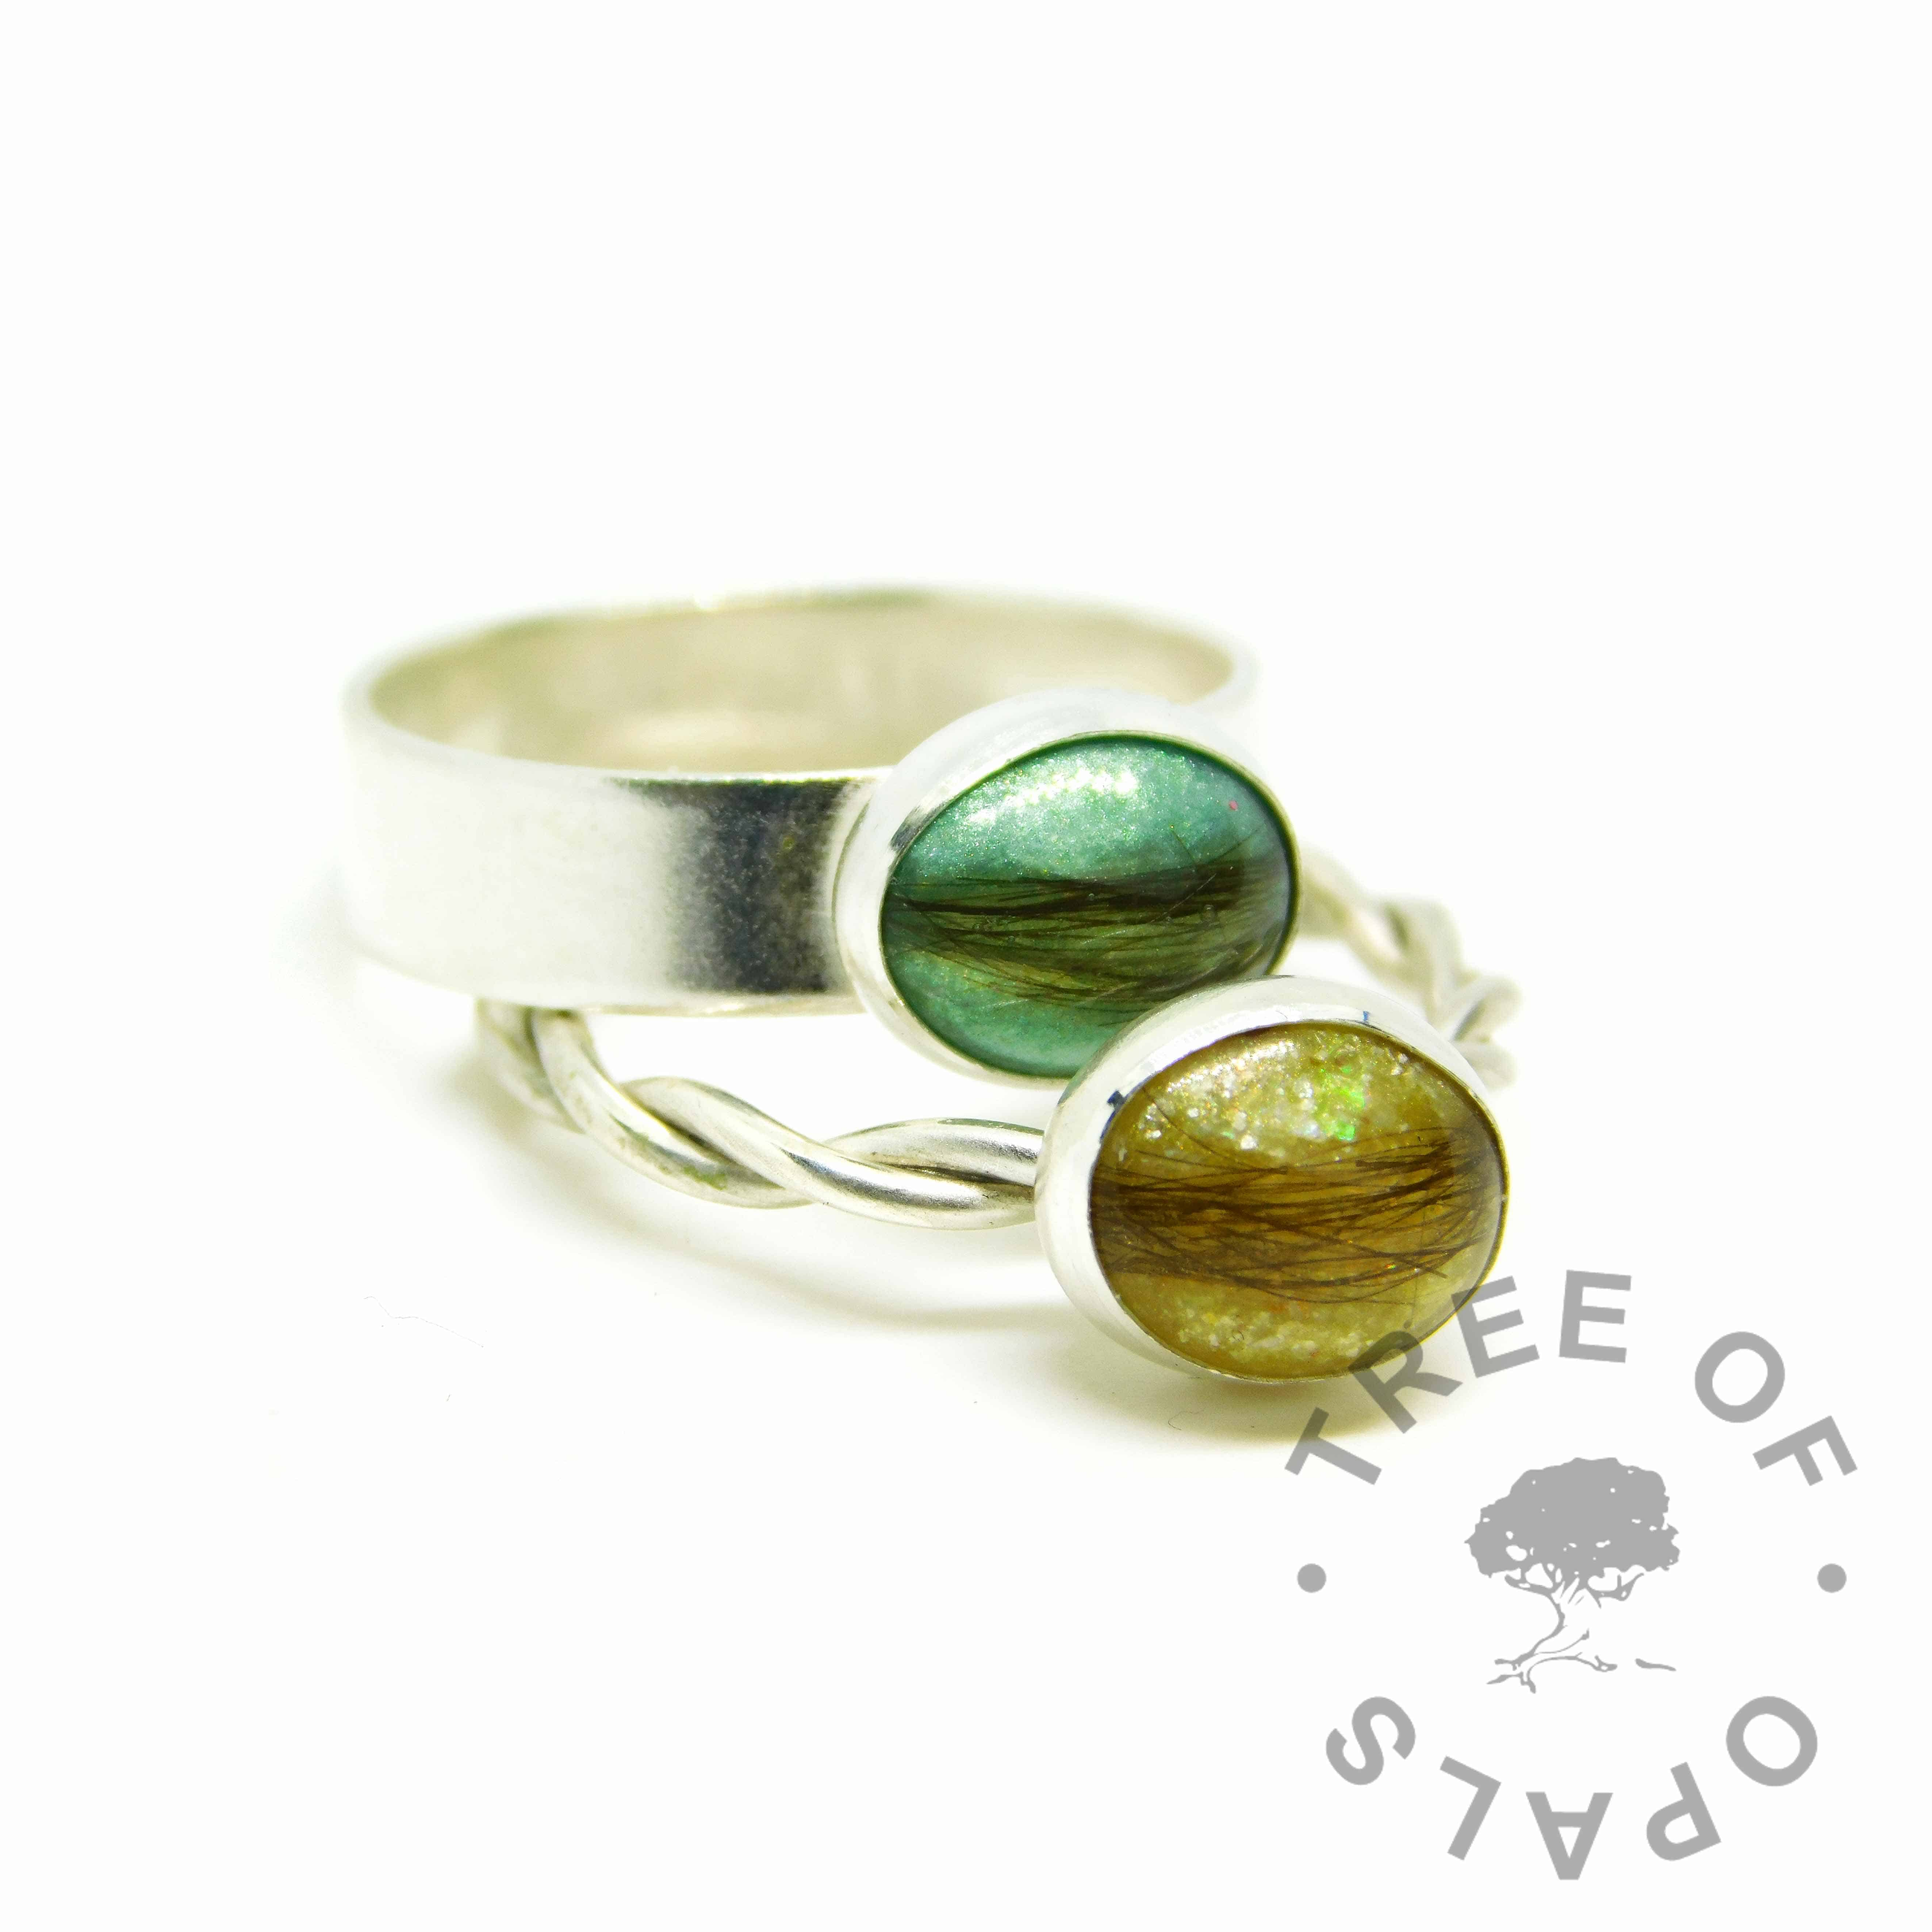 aqua and yellow hair rings, angelic aqua and chimera yellow resin sparkle mixes, 6mm shiny and twisted Argentium silver bands